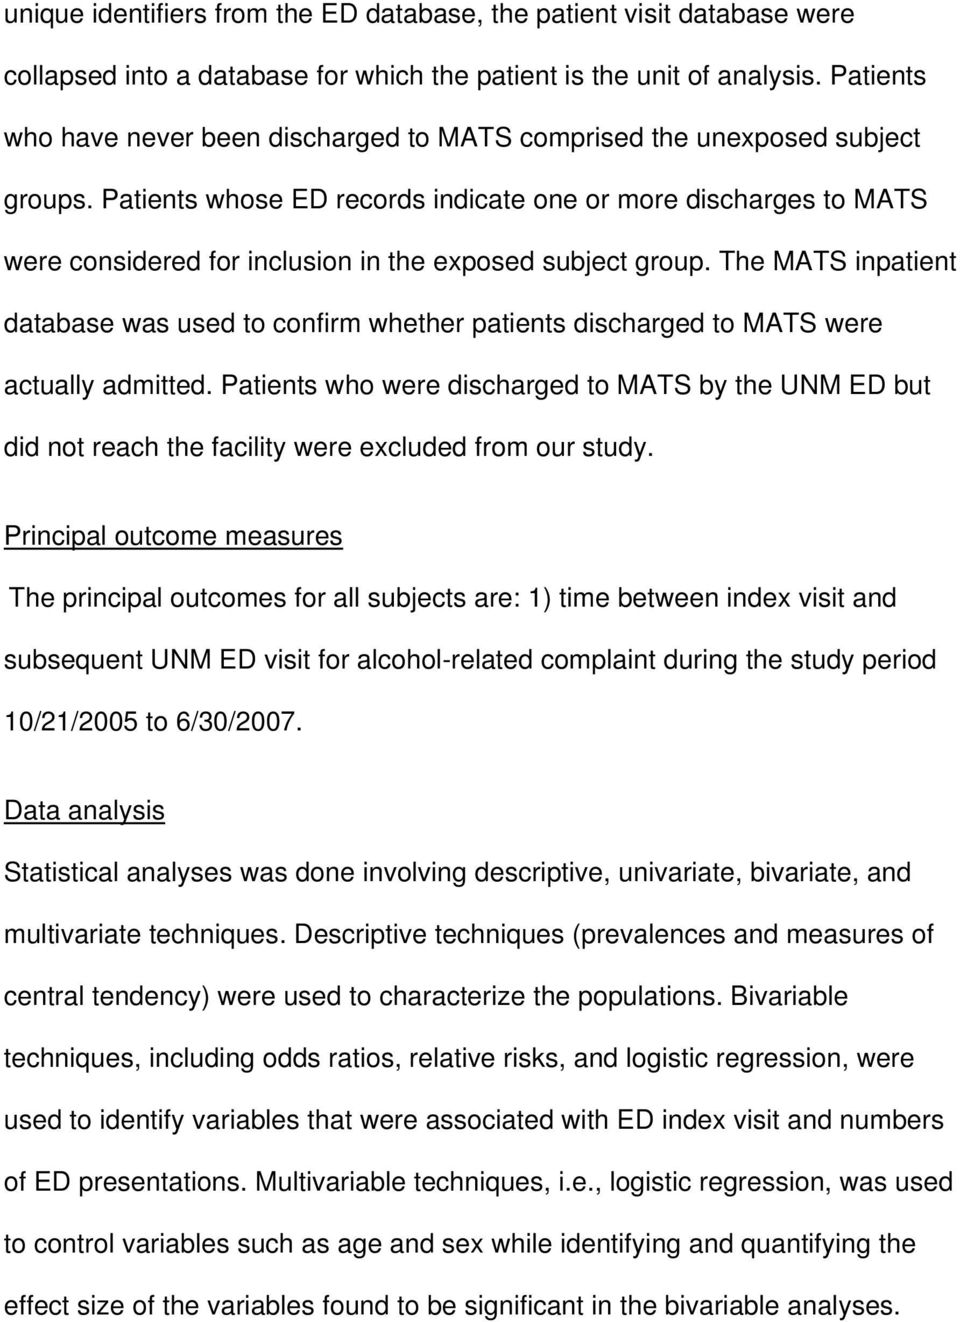 Patients whose ED records indicate one or more discharges to MATS were considered for inclusion in the exposed subject group.